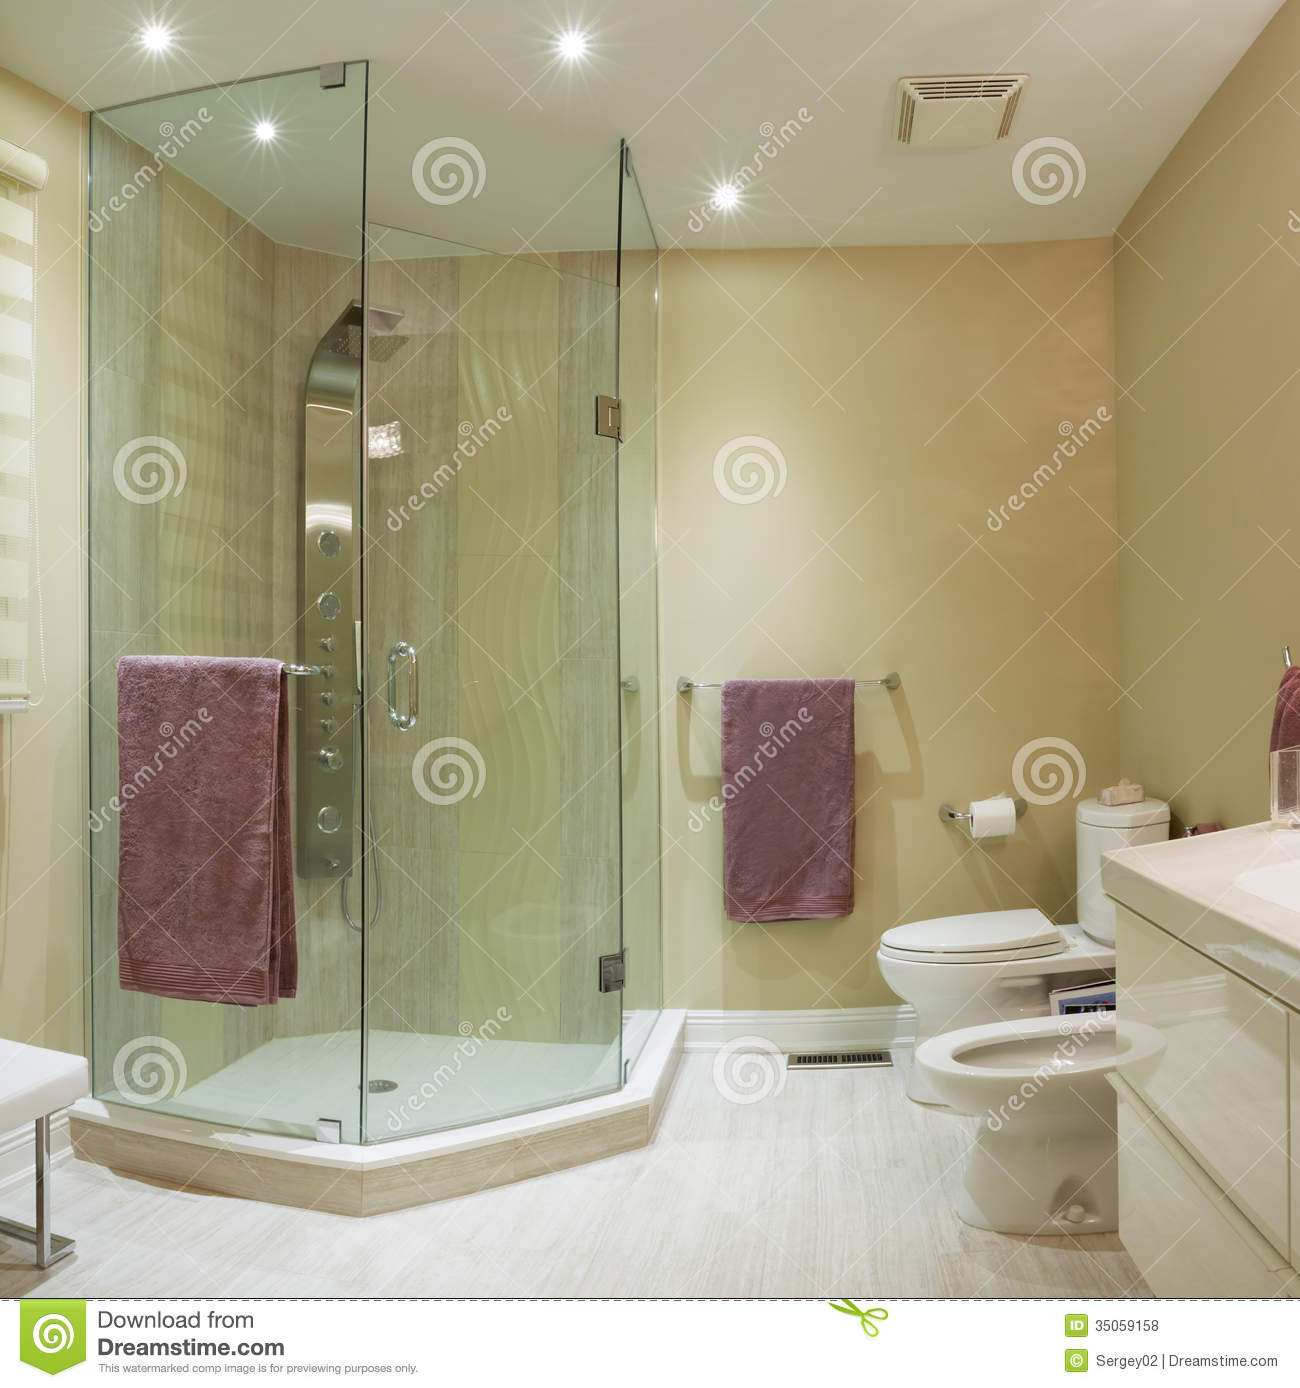 Interior design royalty free stock photos image 35059158 for House bathroom